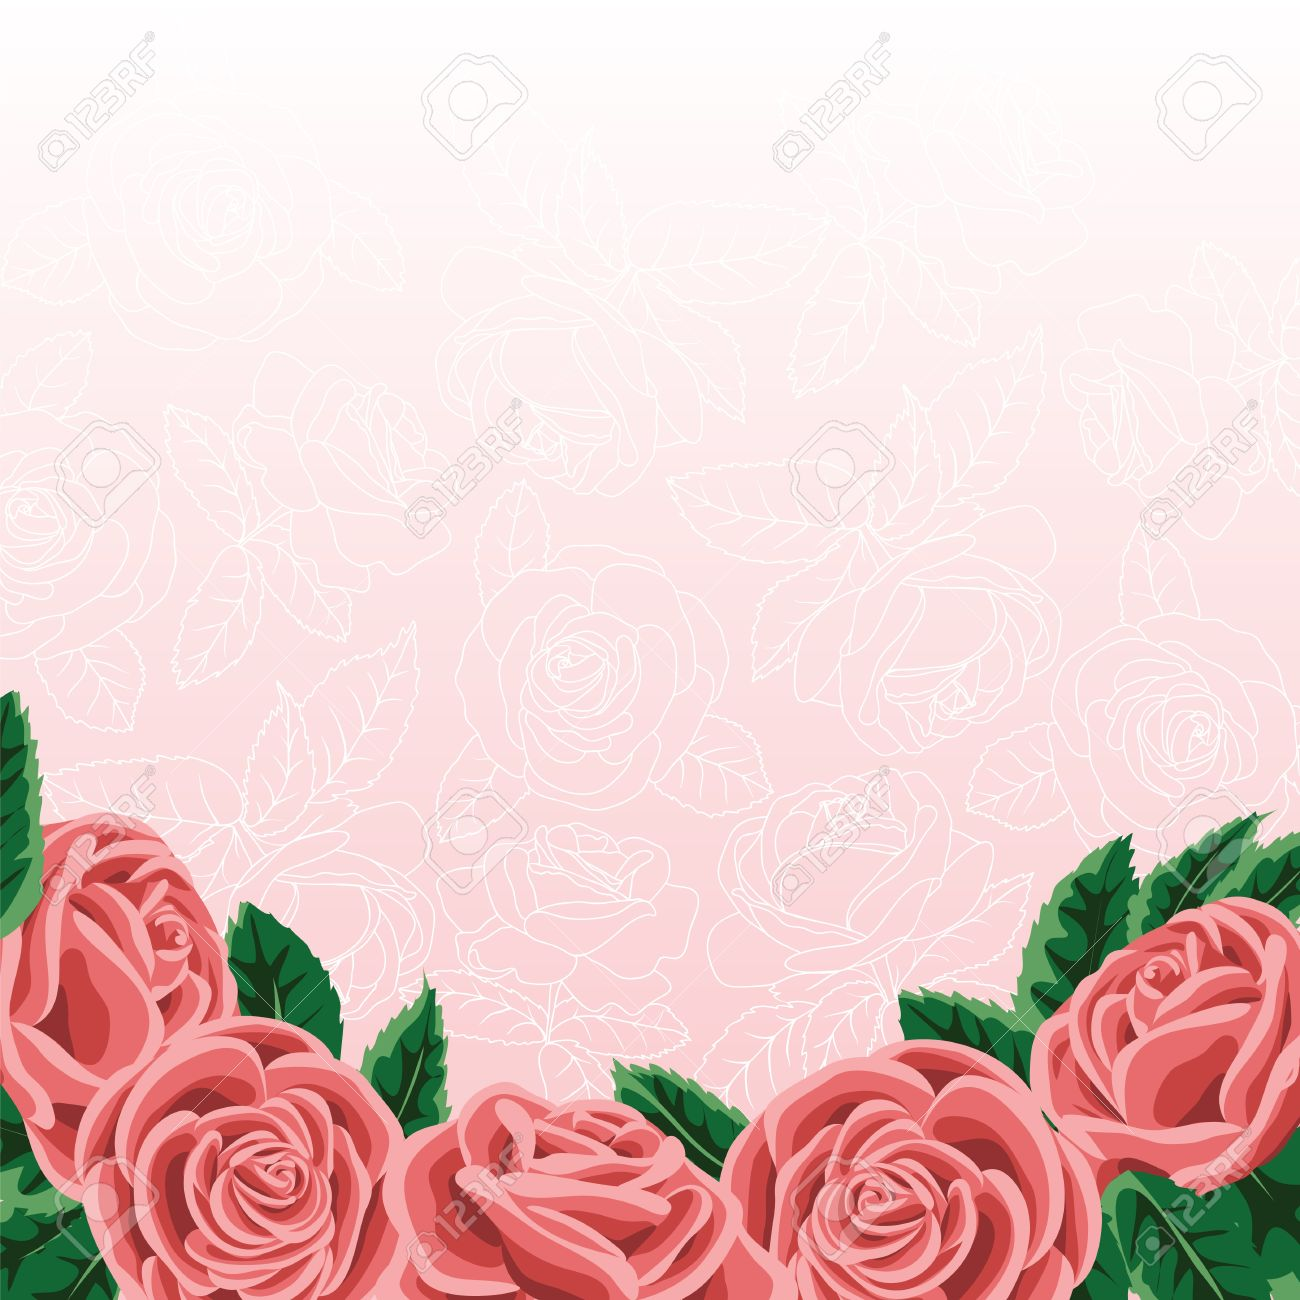 Template For Wedding Invitation Or Greeting Card With Roses – Greeting Card Template